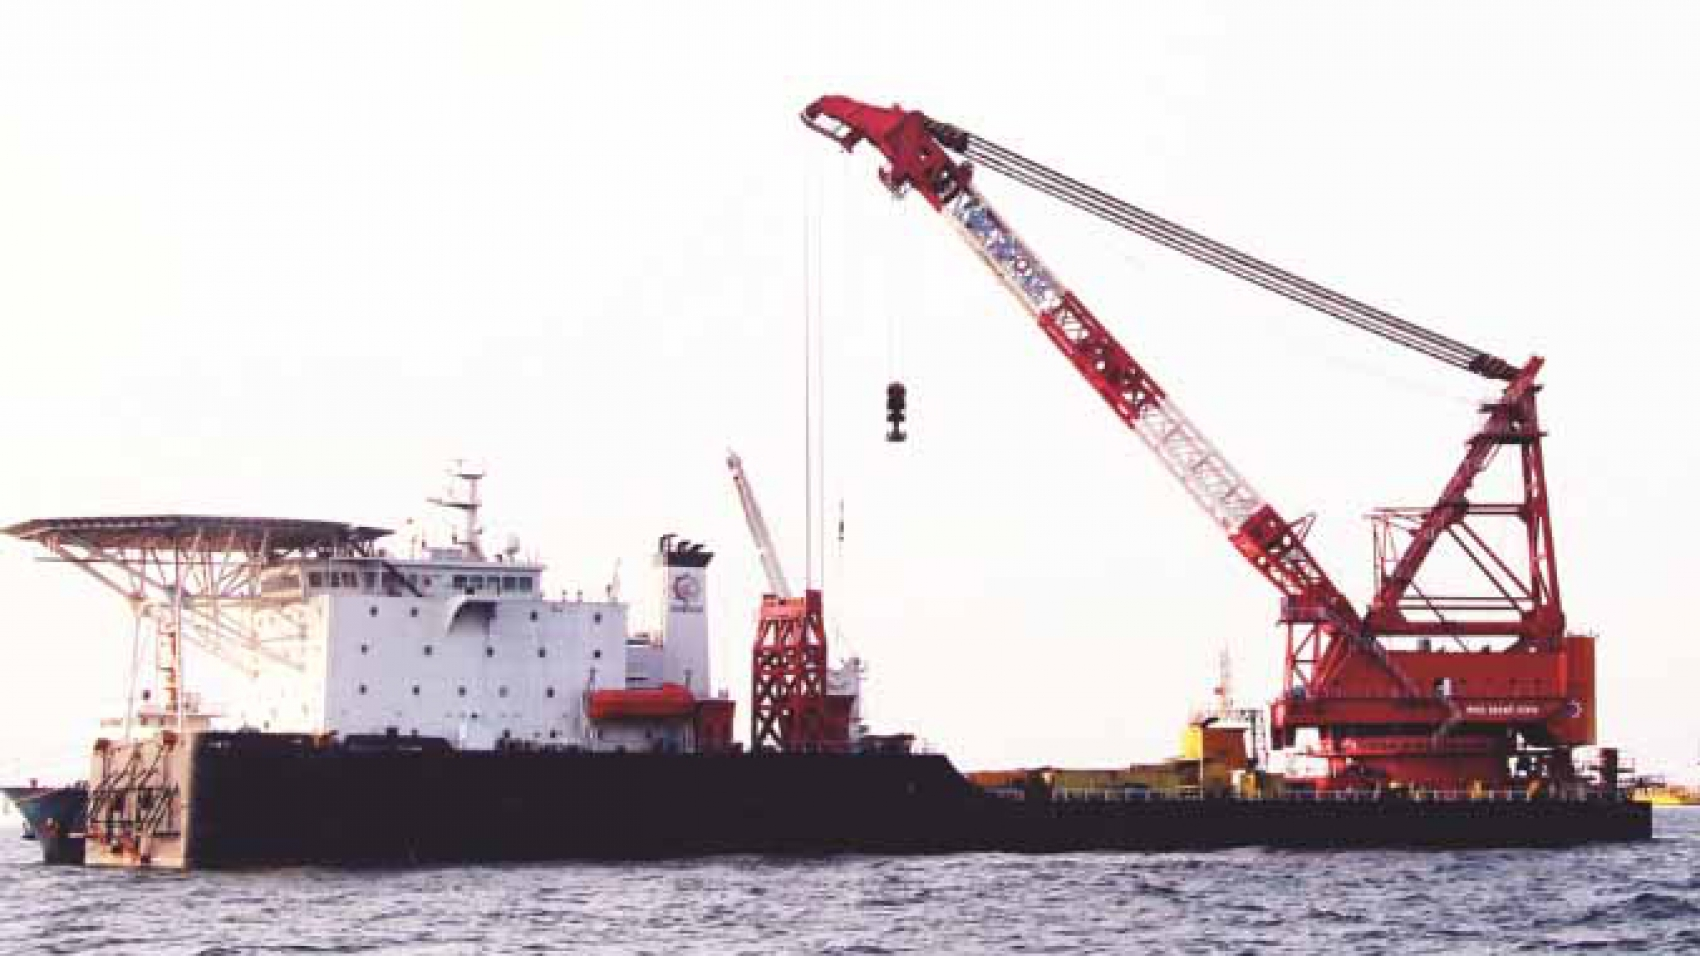 Derrick Pipelay Barge For Sale Ref-1231 - Marine Tags